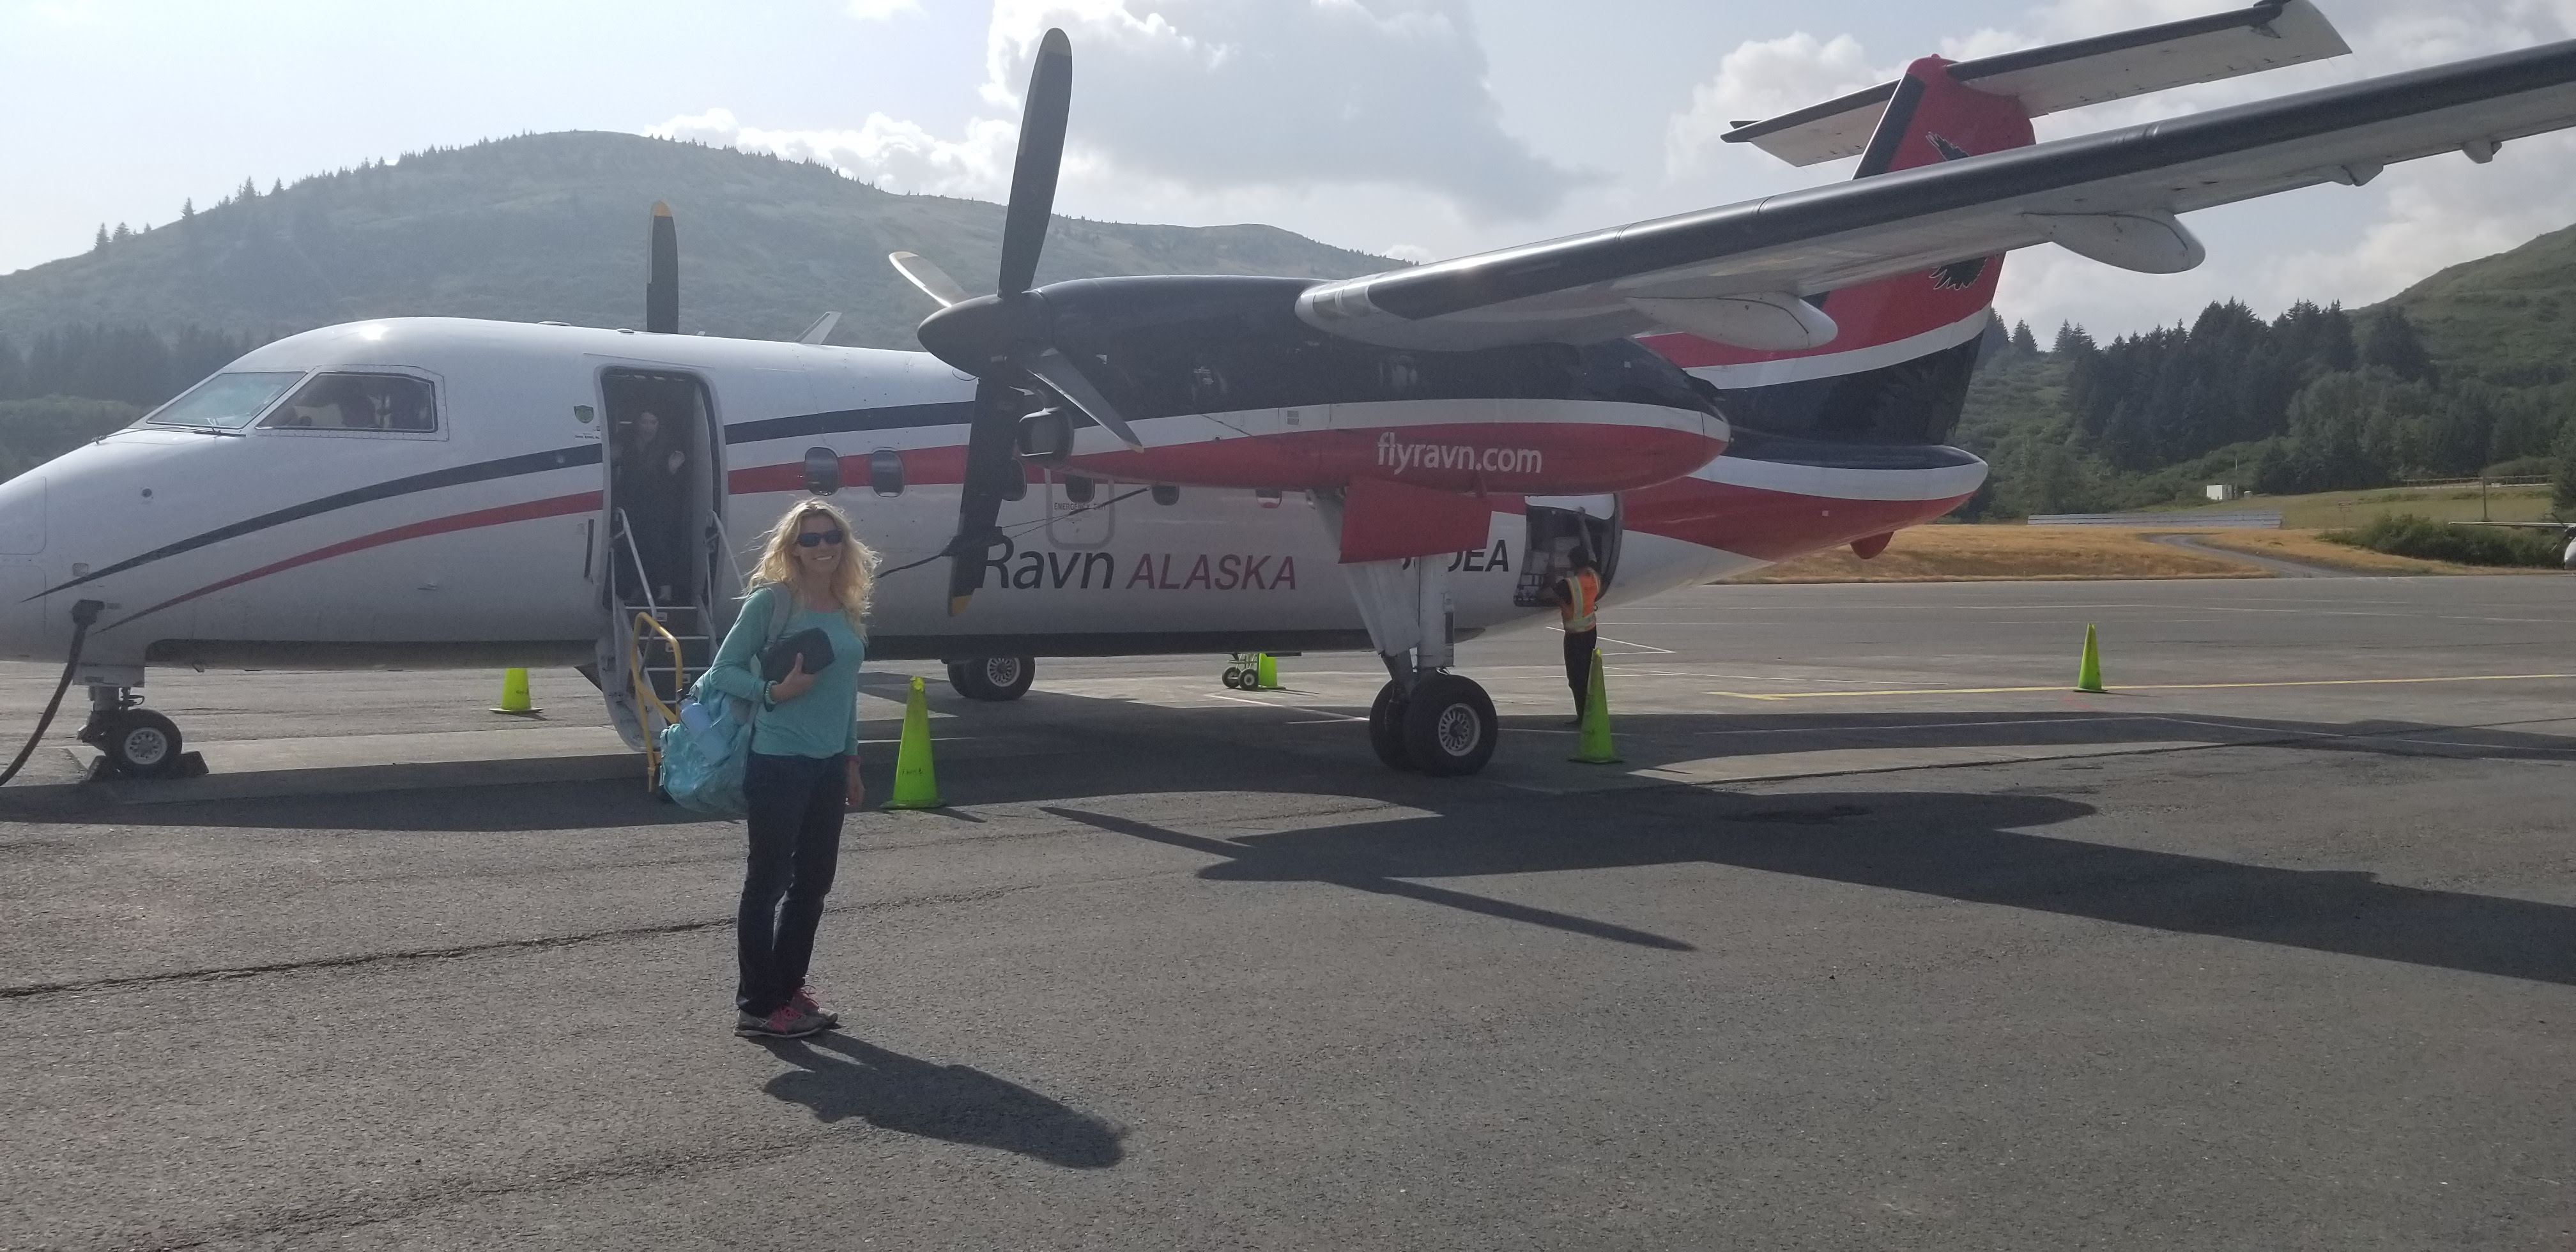 Callie in front of plane